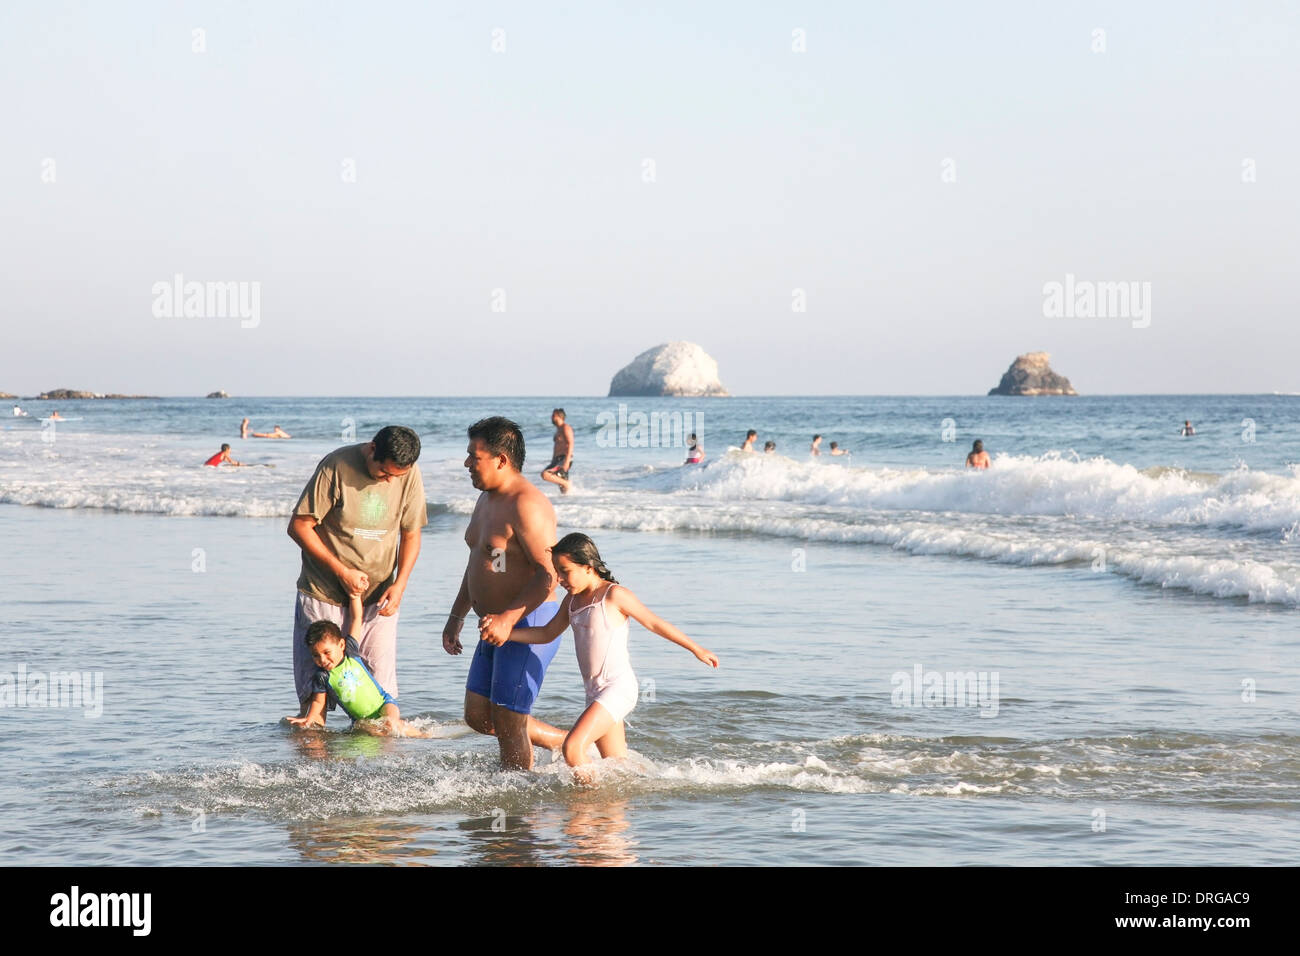 little Mexican girl walking in ocean holding tight to her Dad's hand as another father dangles his toddler son in the water - Stock Image